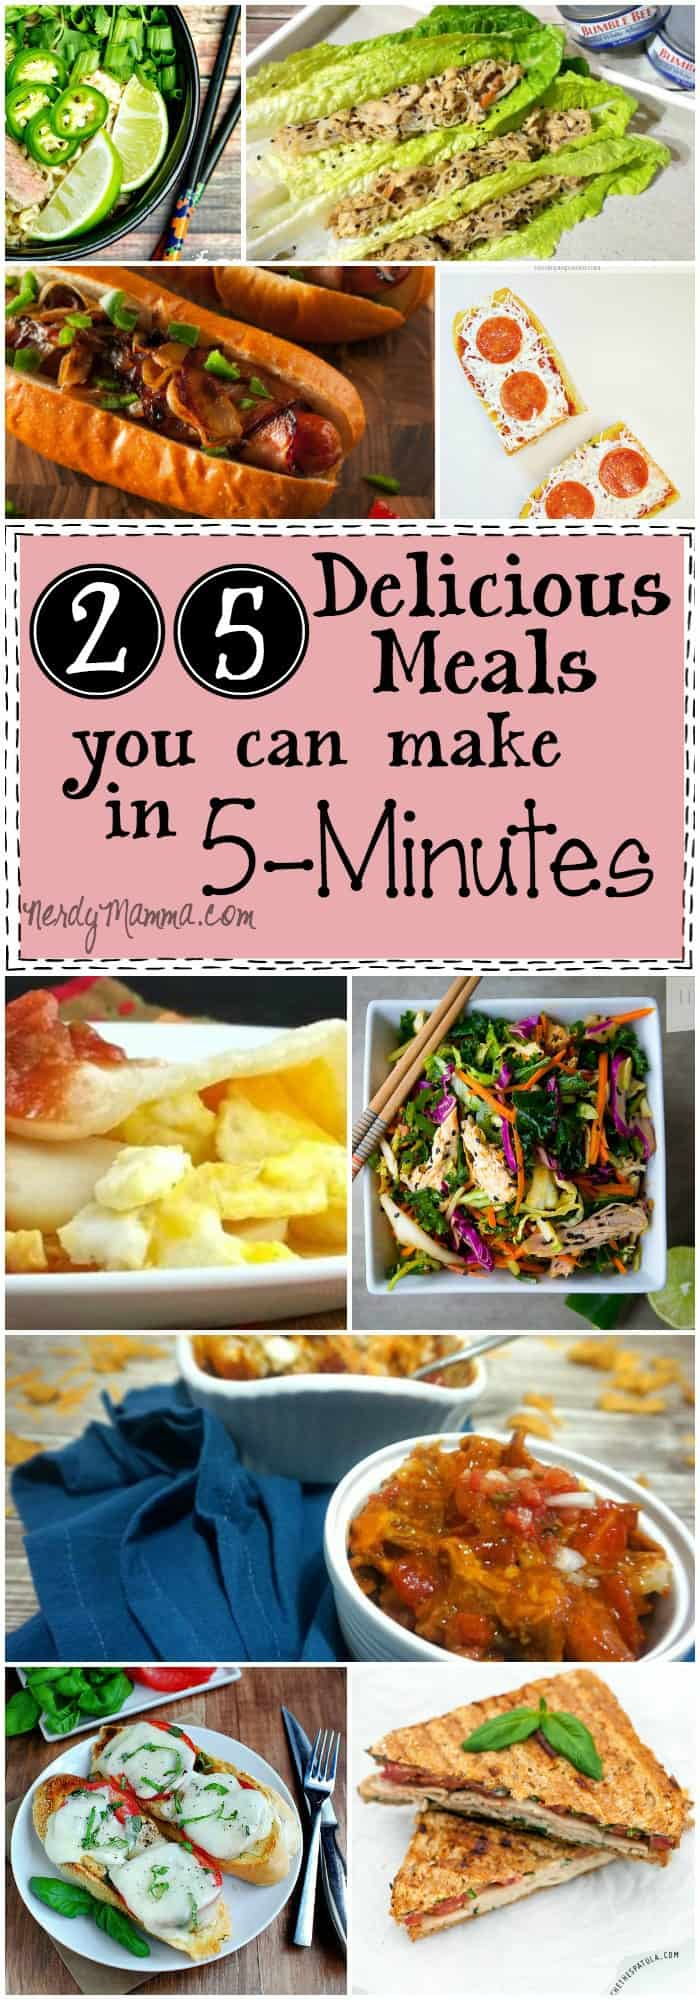 This is the BEST list of 5-Minute Meals I've ever had the pleasure...I mean, so many yummy ideas and they only take 5 minutes!